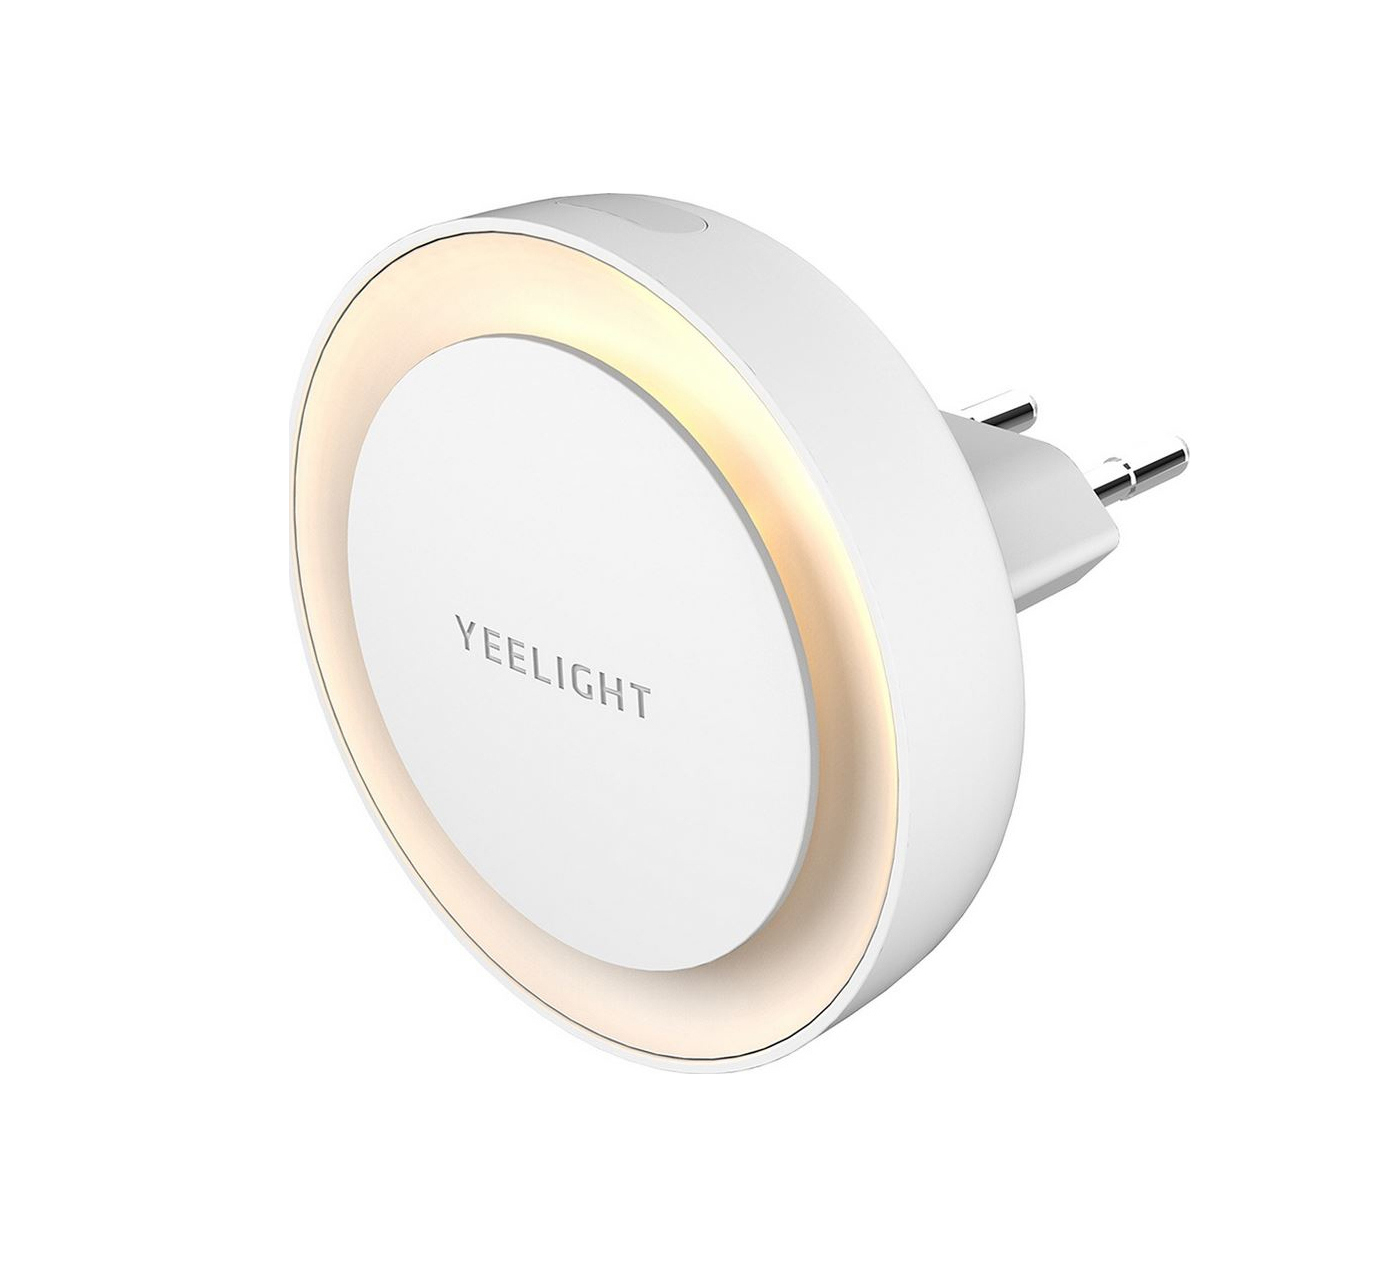 Yeelight Plug-in Light Sensor Nightlight 2500K 0.5W YLYD11YL (2 χρόνια εγγύηση)